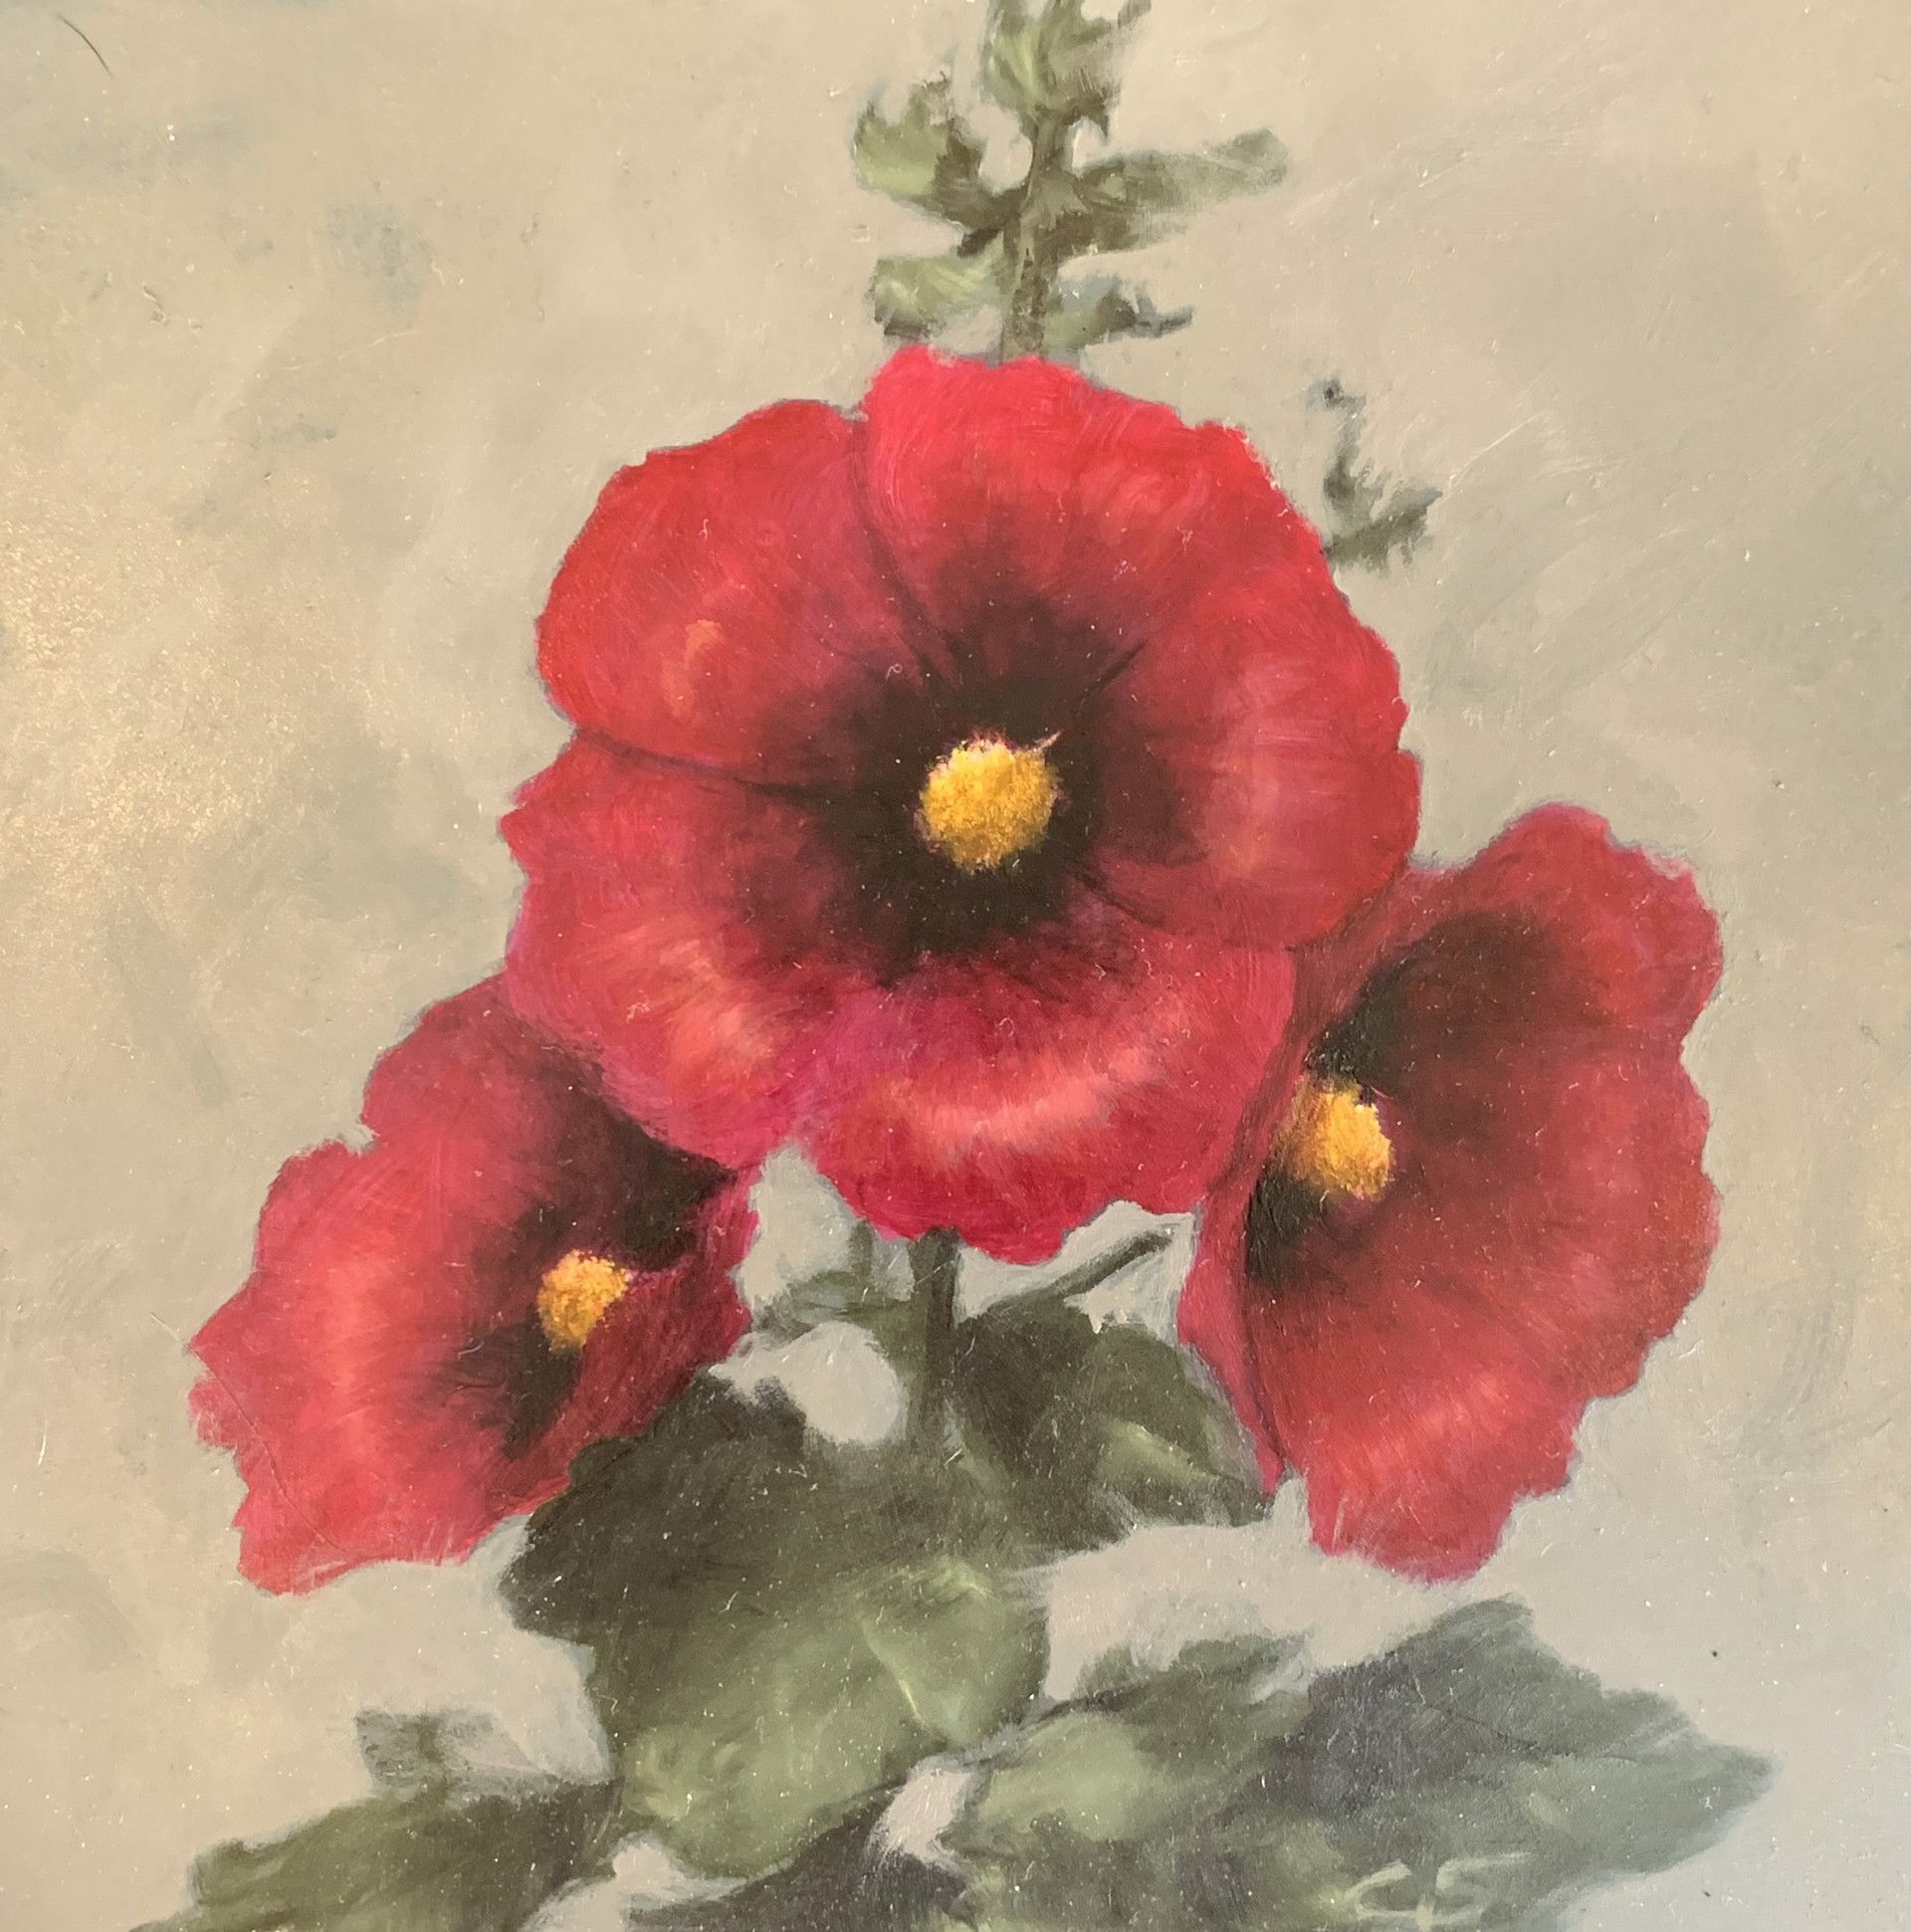 Hollyhock by Gregory Smith